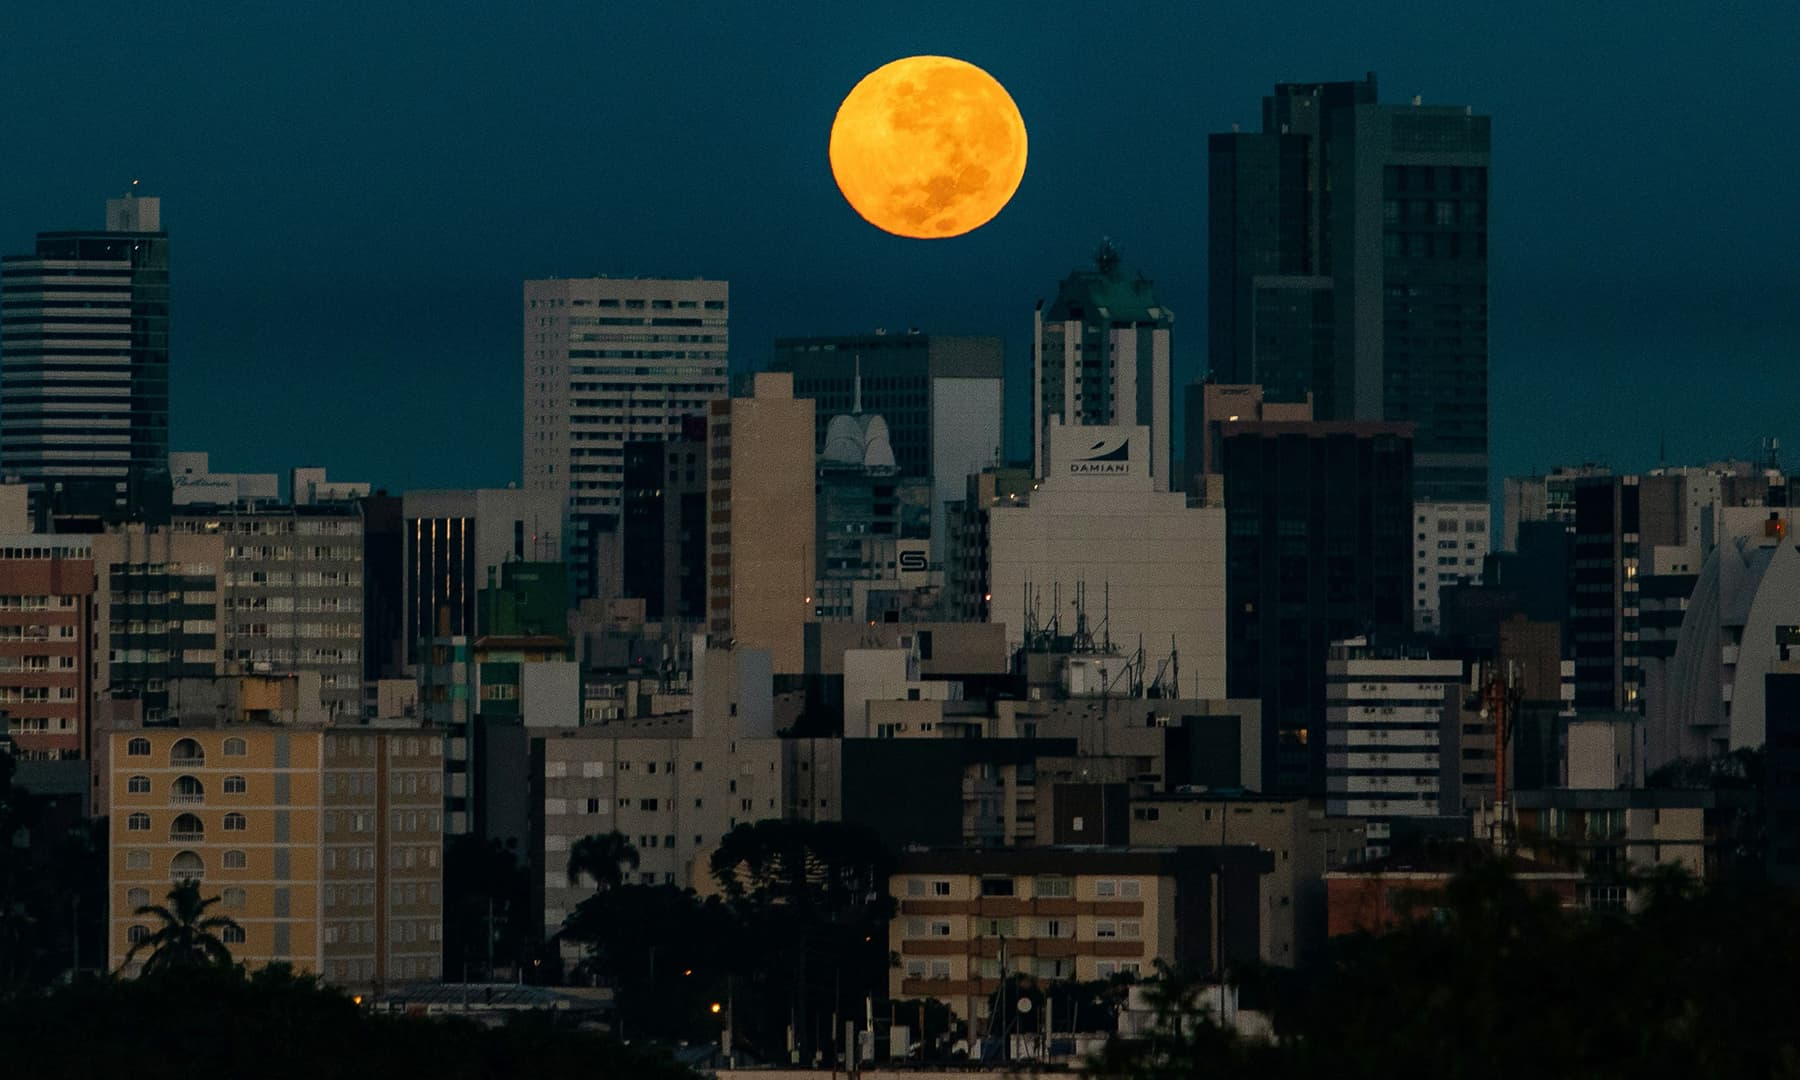 The Flower Supermoon rises over Curitiba, Brazil on May 7. — AFP